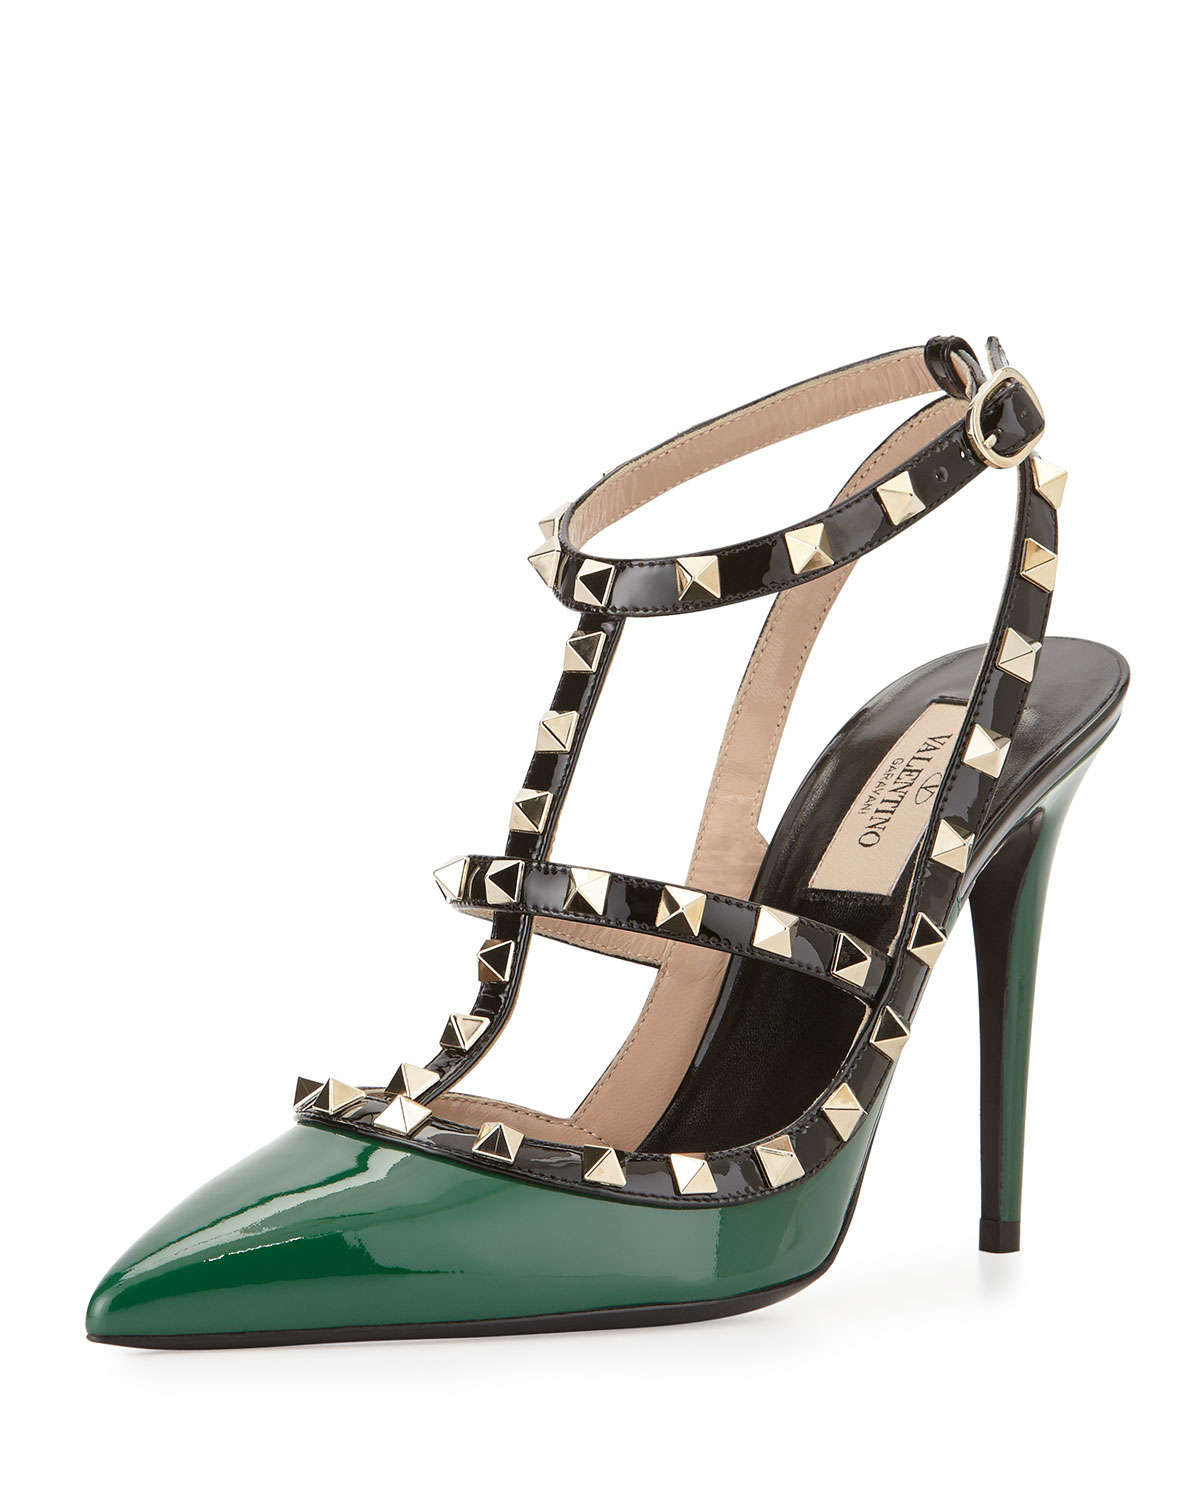 valentino garavani rockstud metallic leather pumps in green lyst. Black Bedroom Furniture Sets. Home Design Ideas